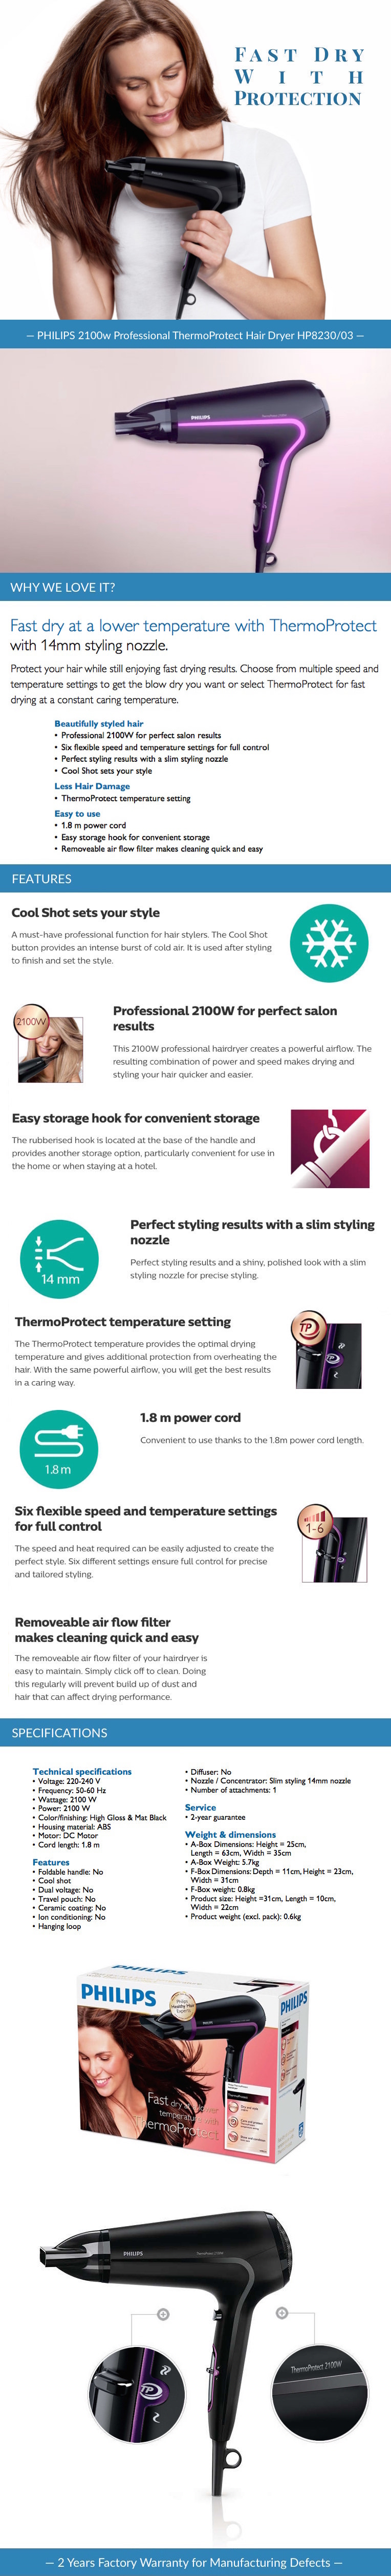 PHILIPS 2100w Professional ThermoProtect Hair Dryer HP8230/03